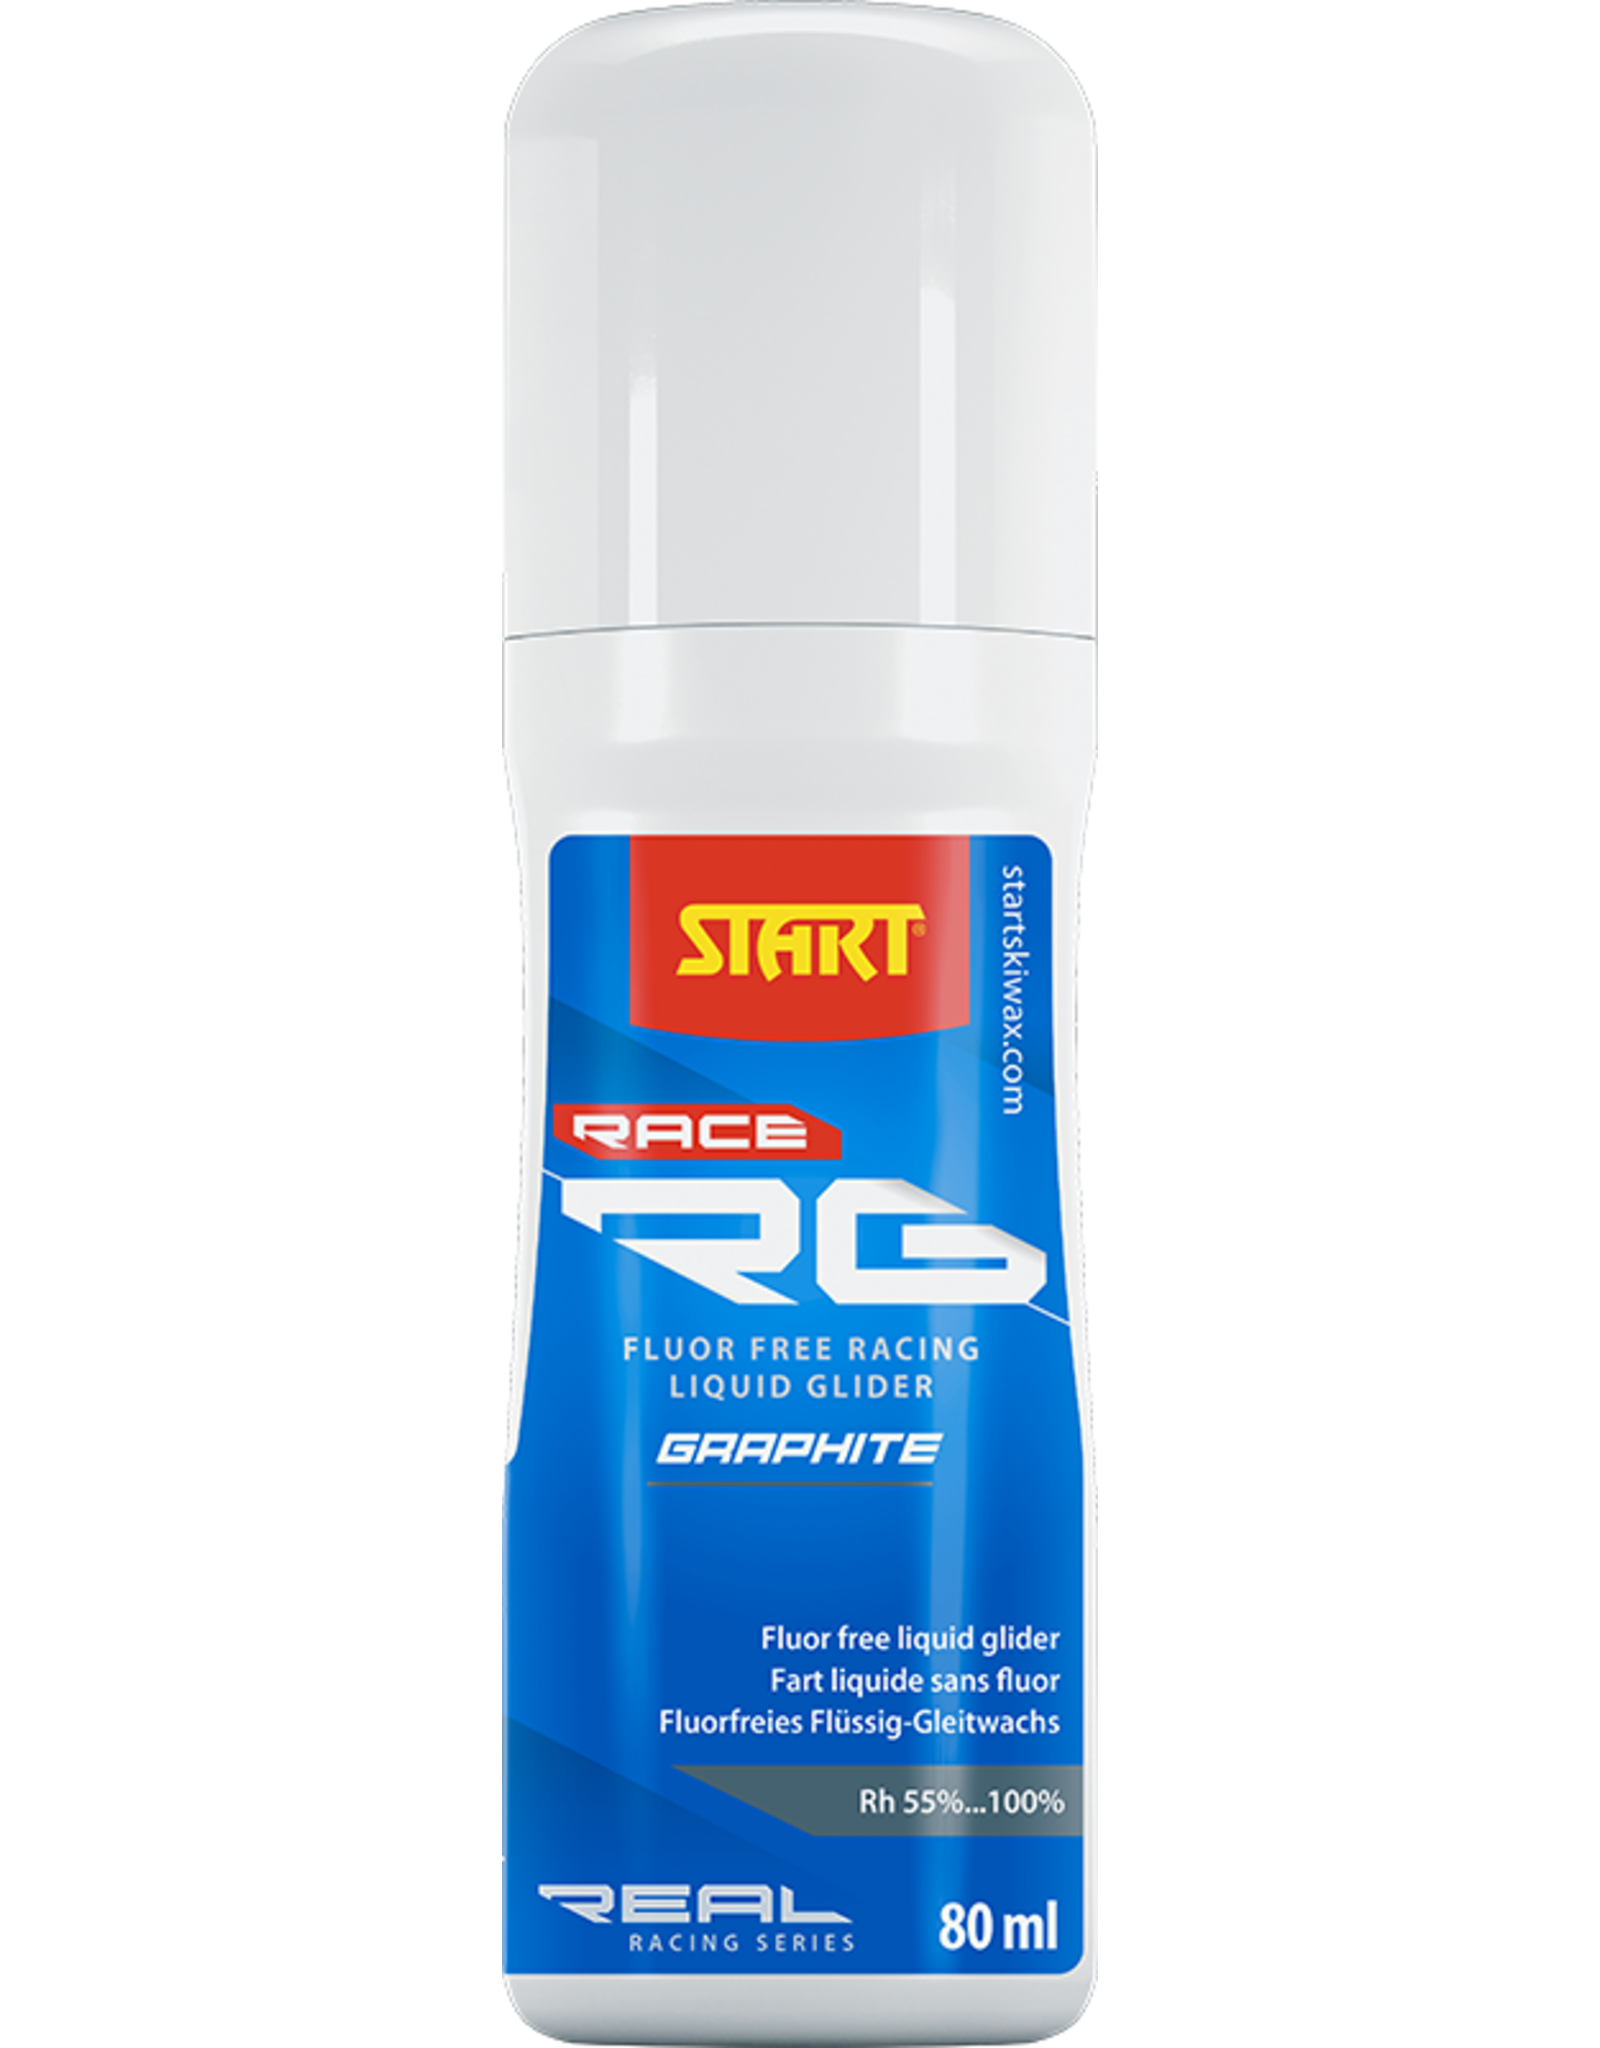 Start RG Race Liquid Graphite Glider 80ml